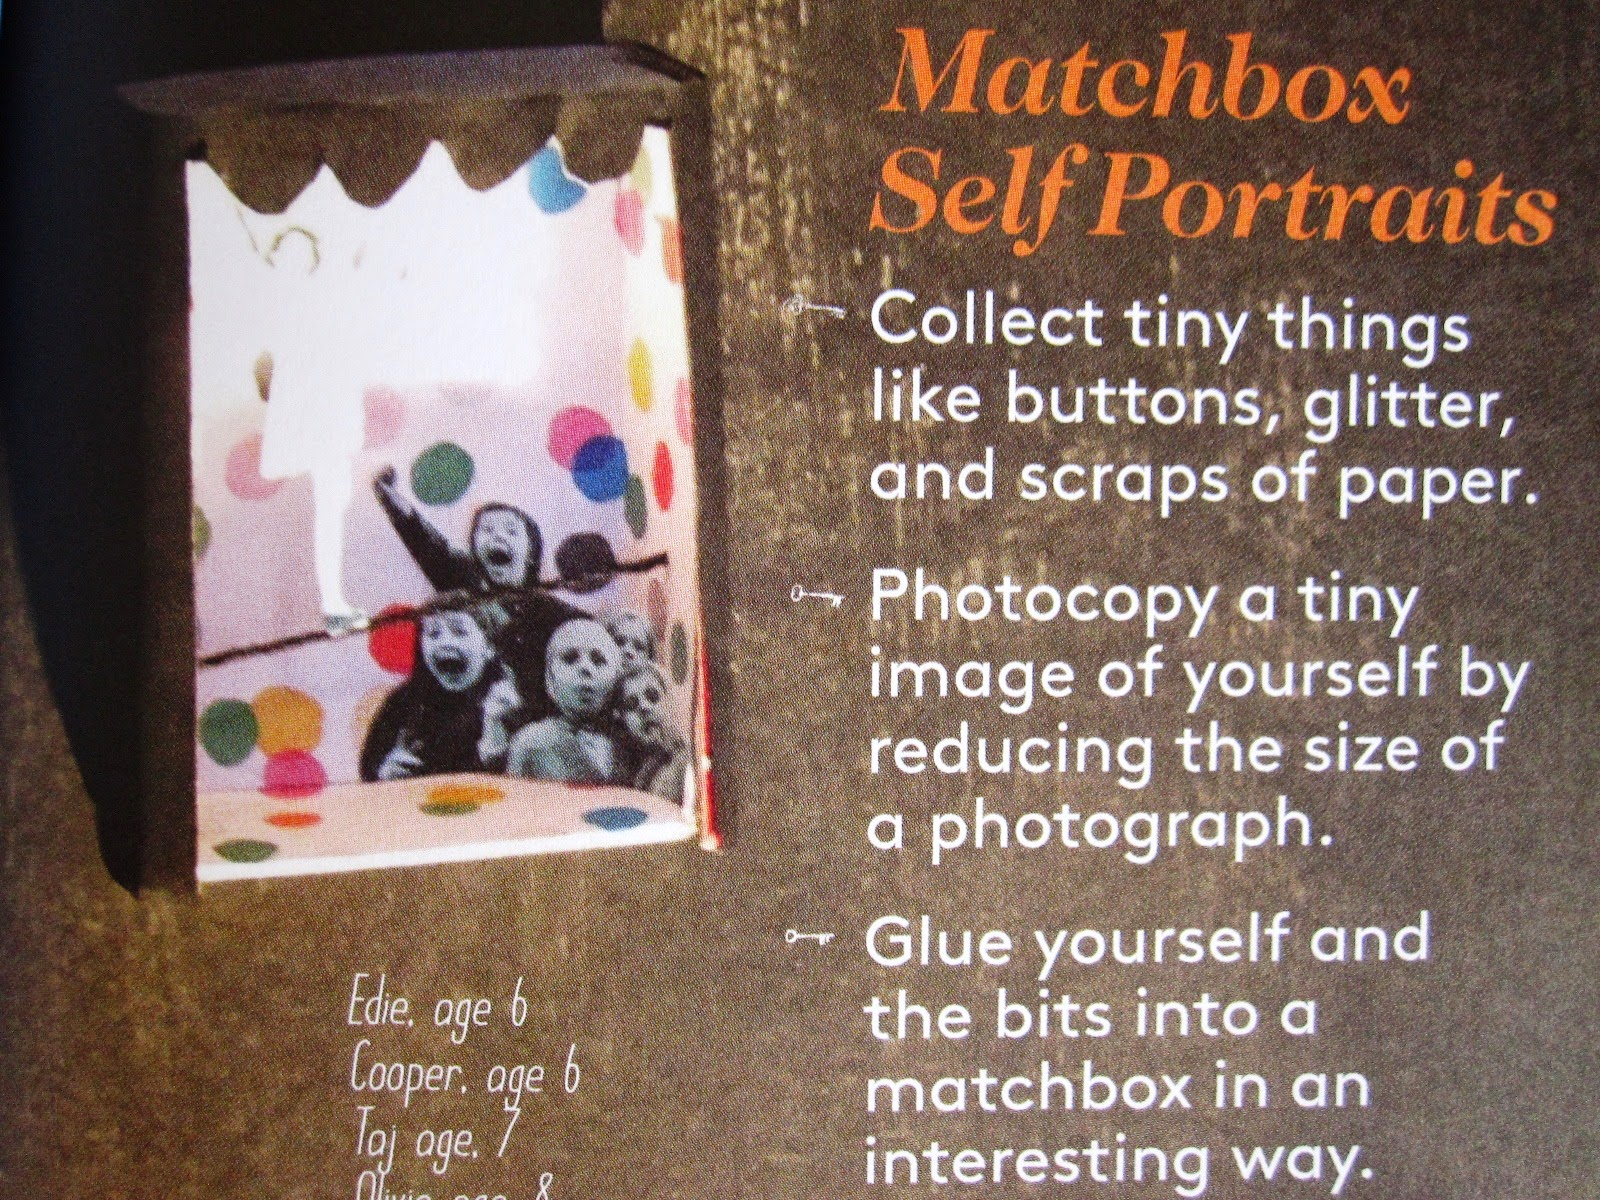 Instructions from a magazine for making tiny self portraits in matchboxes.